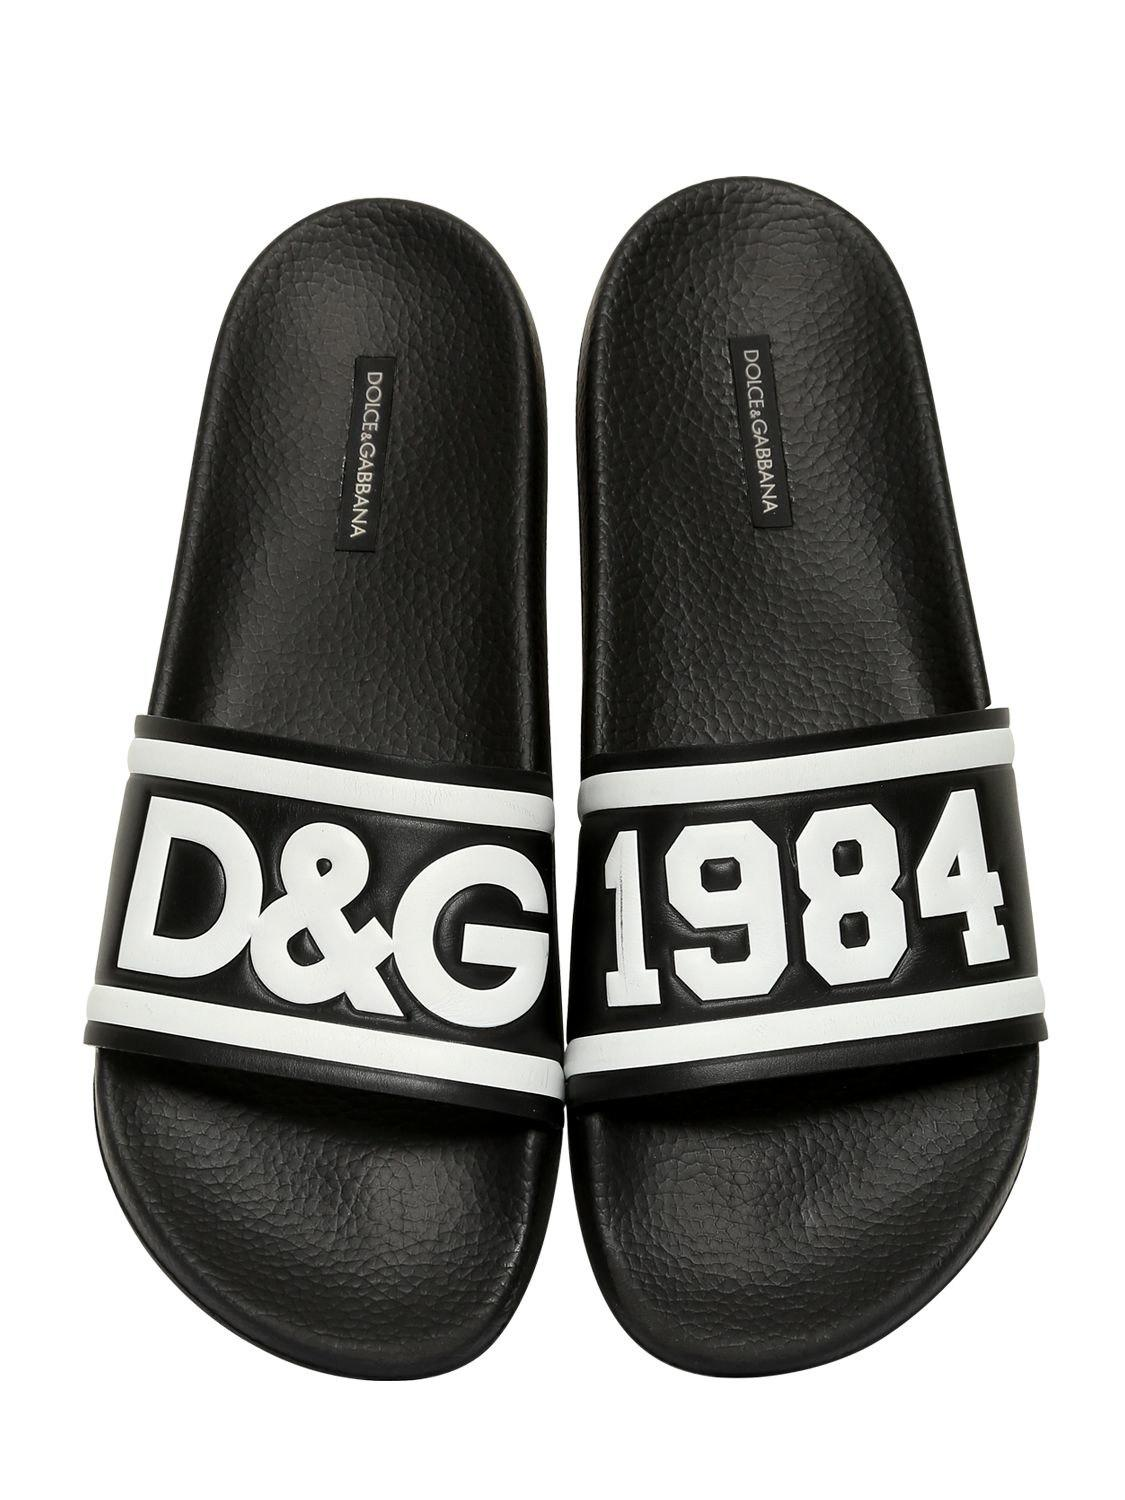 Dolce & GabbanaD&G RUBBERIZED LEATHER SLIDE SANDALS ATYgD